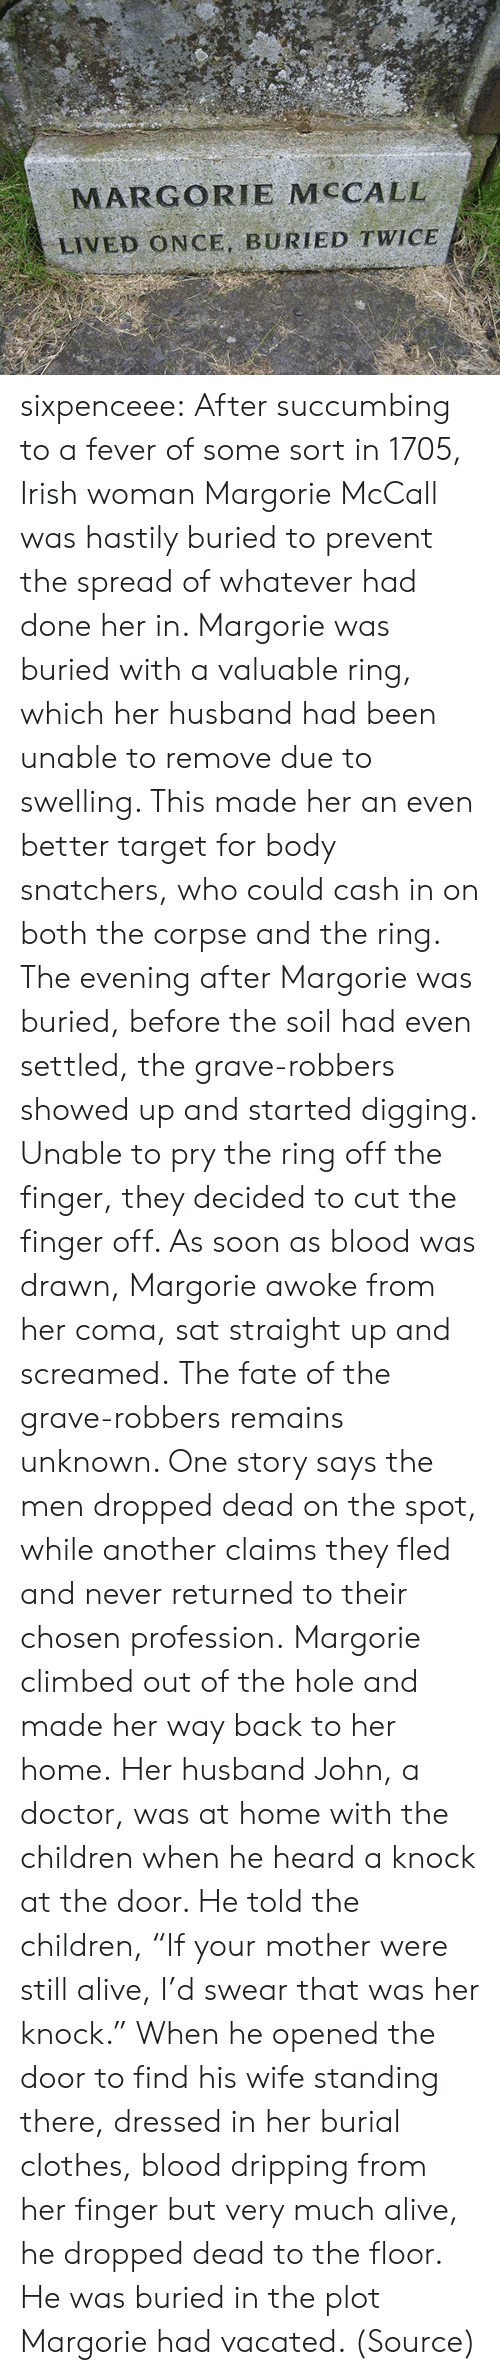 "coma: MARGORIE MCCALL  LIVED ONCE, BURIED TWICE sixpenceee:  After succumbing to a fever of some sort in 1705, Irish woman Margorie McCall was hastily buried to prevent the spread of whatever had done her in. Margorie was buried with a valuable ring, which her husband had been unable to remove due to swelling. This made her an even better target for body snatchers, who could cash in on both the corpse and the ring. The evening after Margorie was buried, before the soil had even settled, the grave-robbers showed up and started digging. Unable to pry the ring off the finger, they decided to cut the finger off. As soon as blood was drawn, Margorie awoke from her coma, sat straight up and screamed. The fate of the grave-robbers remains unknown. One story says the men dropped dead on the spot, while another claims they fled and never returned to their chosen profession. Margorie climbed out of the hole and made her way back to her home. Her husband John, a doctor, was at home with the children when he heard a knock at the door. He told the children, ""If your mother were still alive, I'd swear that was her knock."" When he opened the door to find his wife standing there, dressed in her burial clothes, blood dripping from her finger but very much alive, he dropped dead to the floor. He was buried in the plot Margorie had vacated. (Source)"